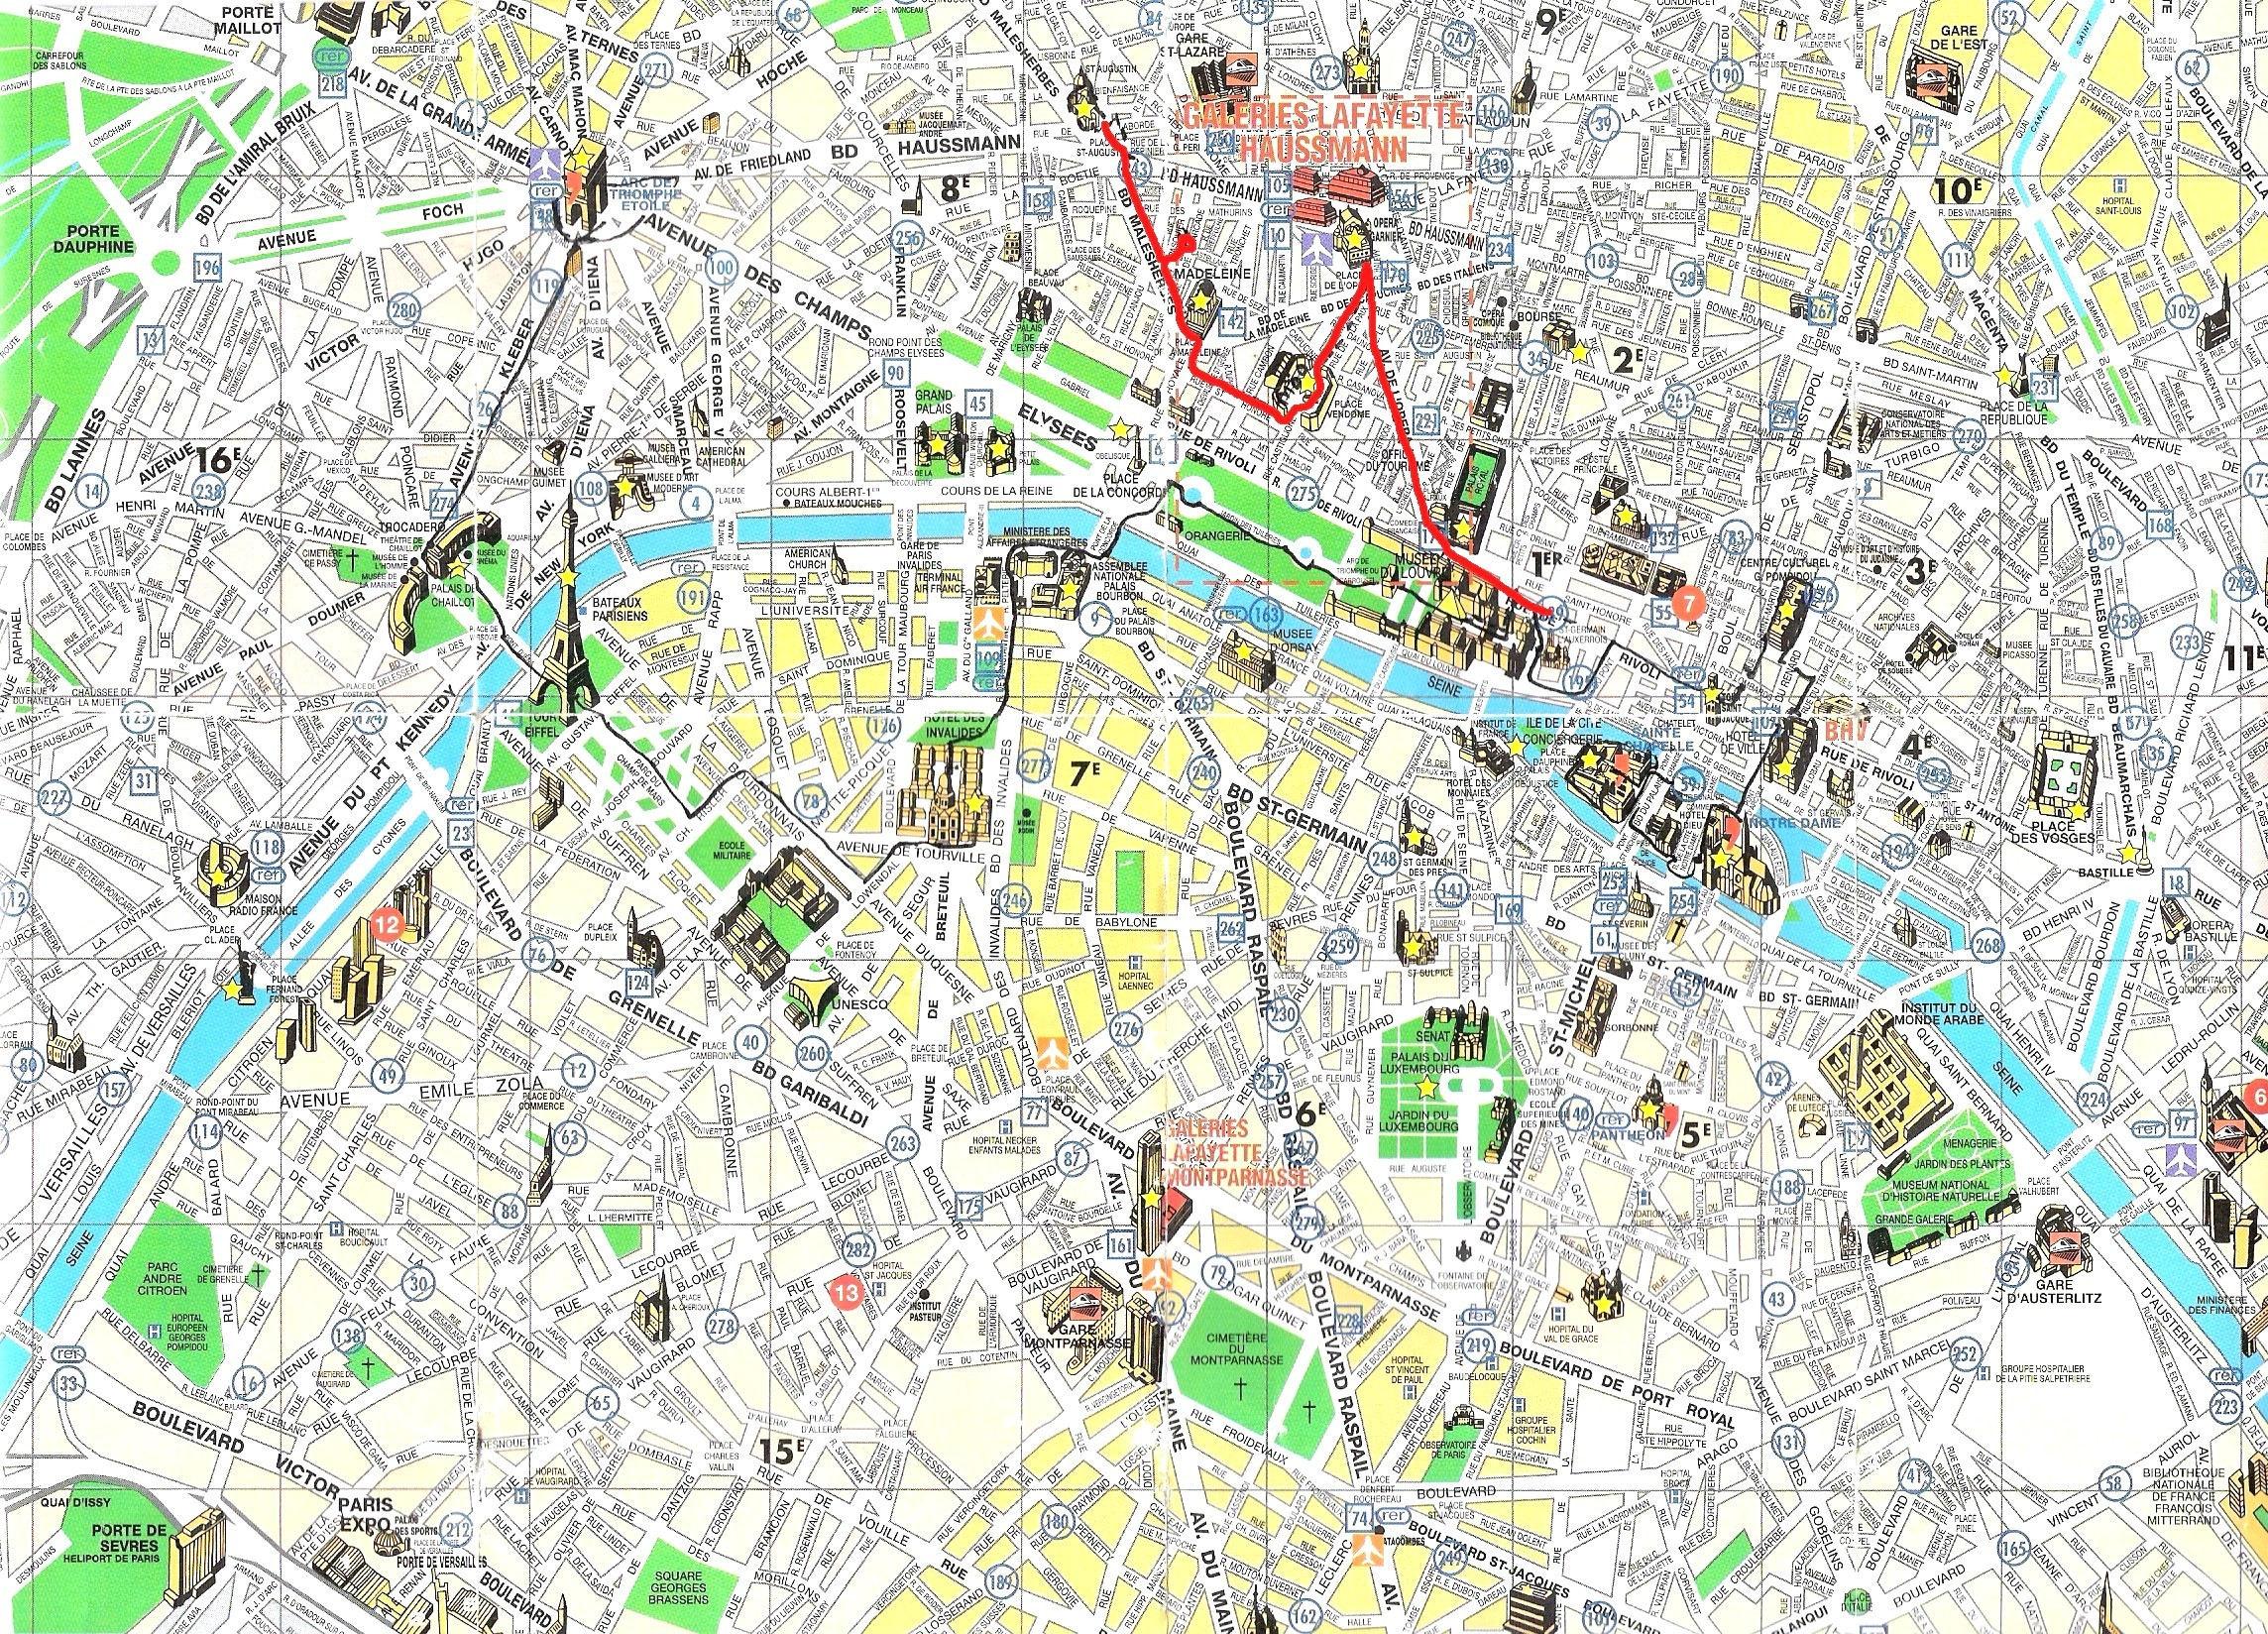 Street Map Of Paris France Printable Maps On Tourist Lovely And For - Printable Tourist Map Of Paris France